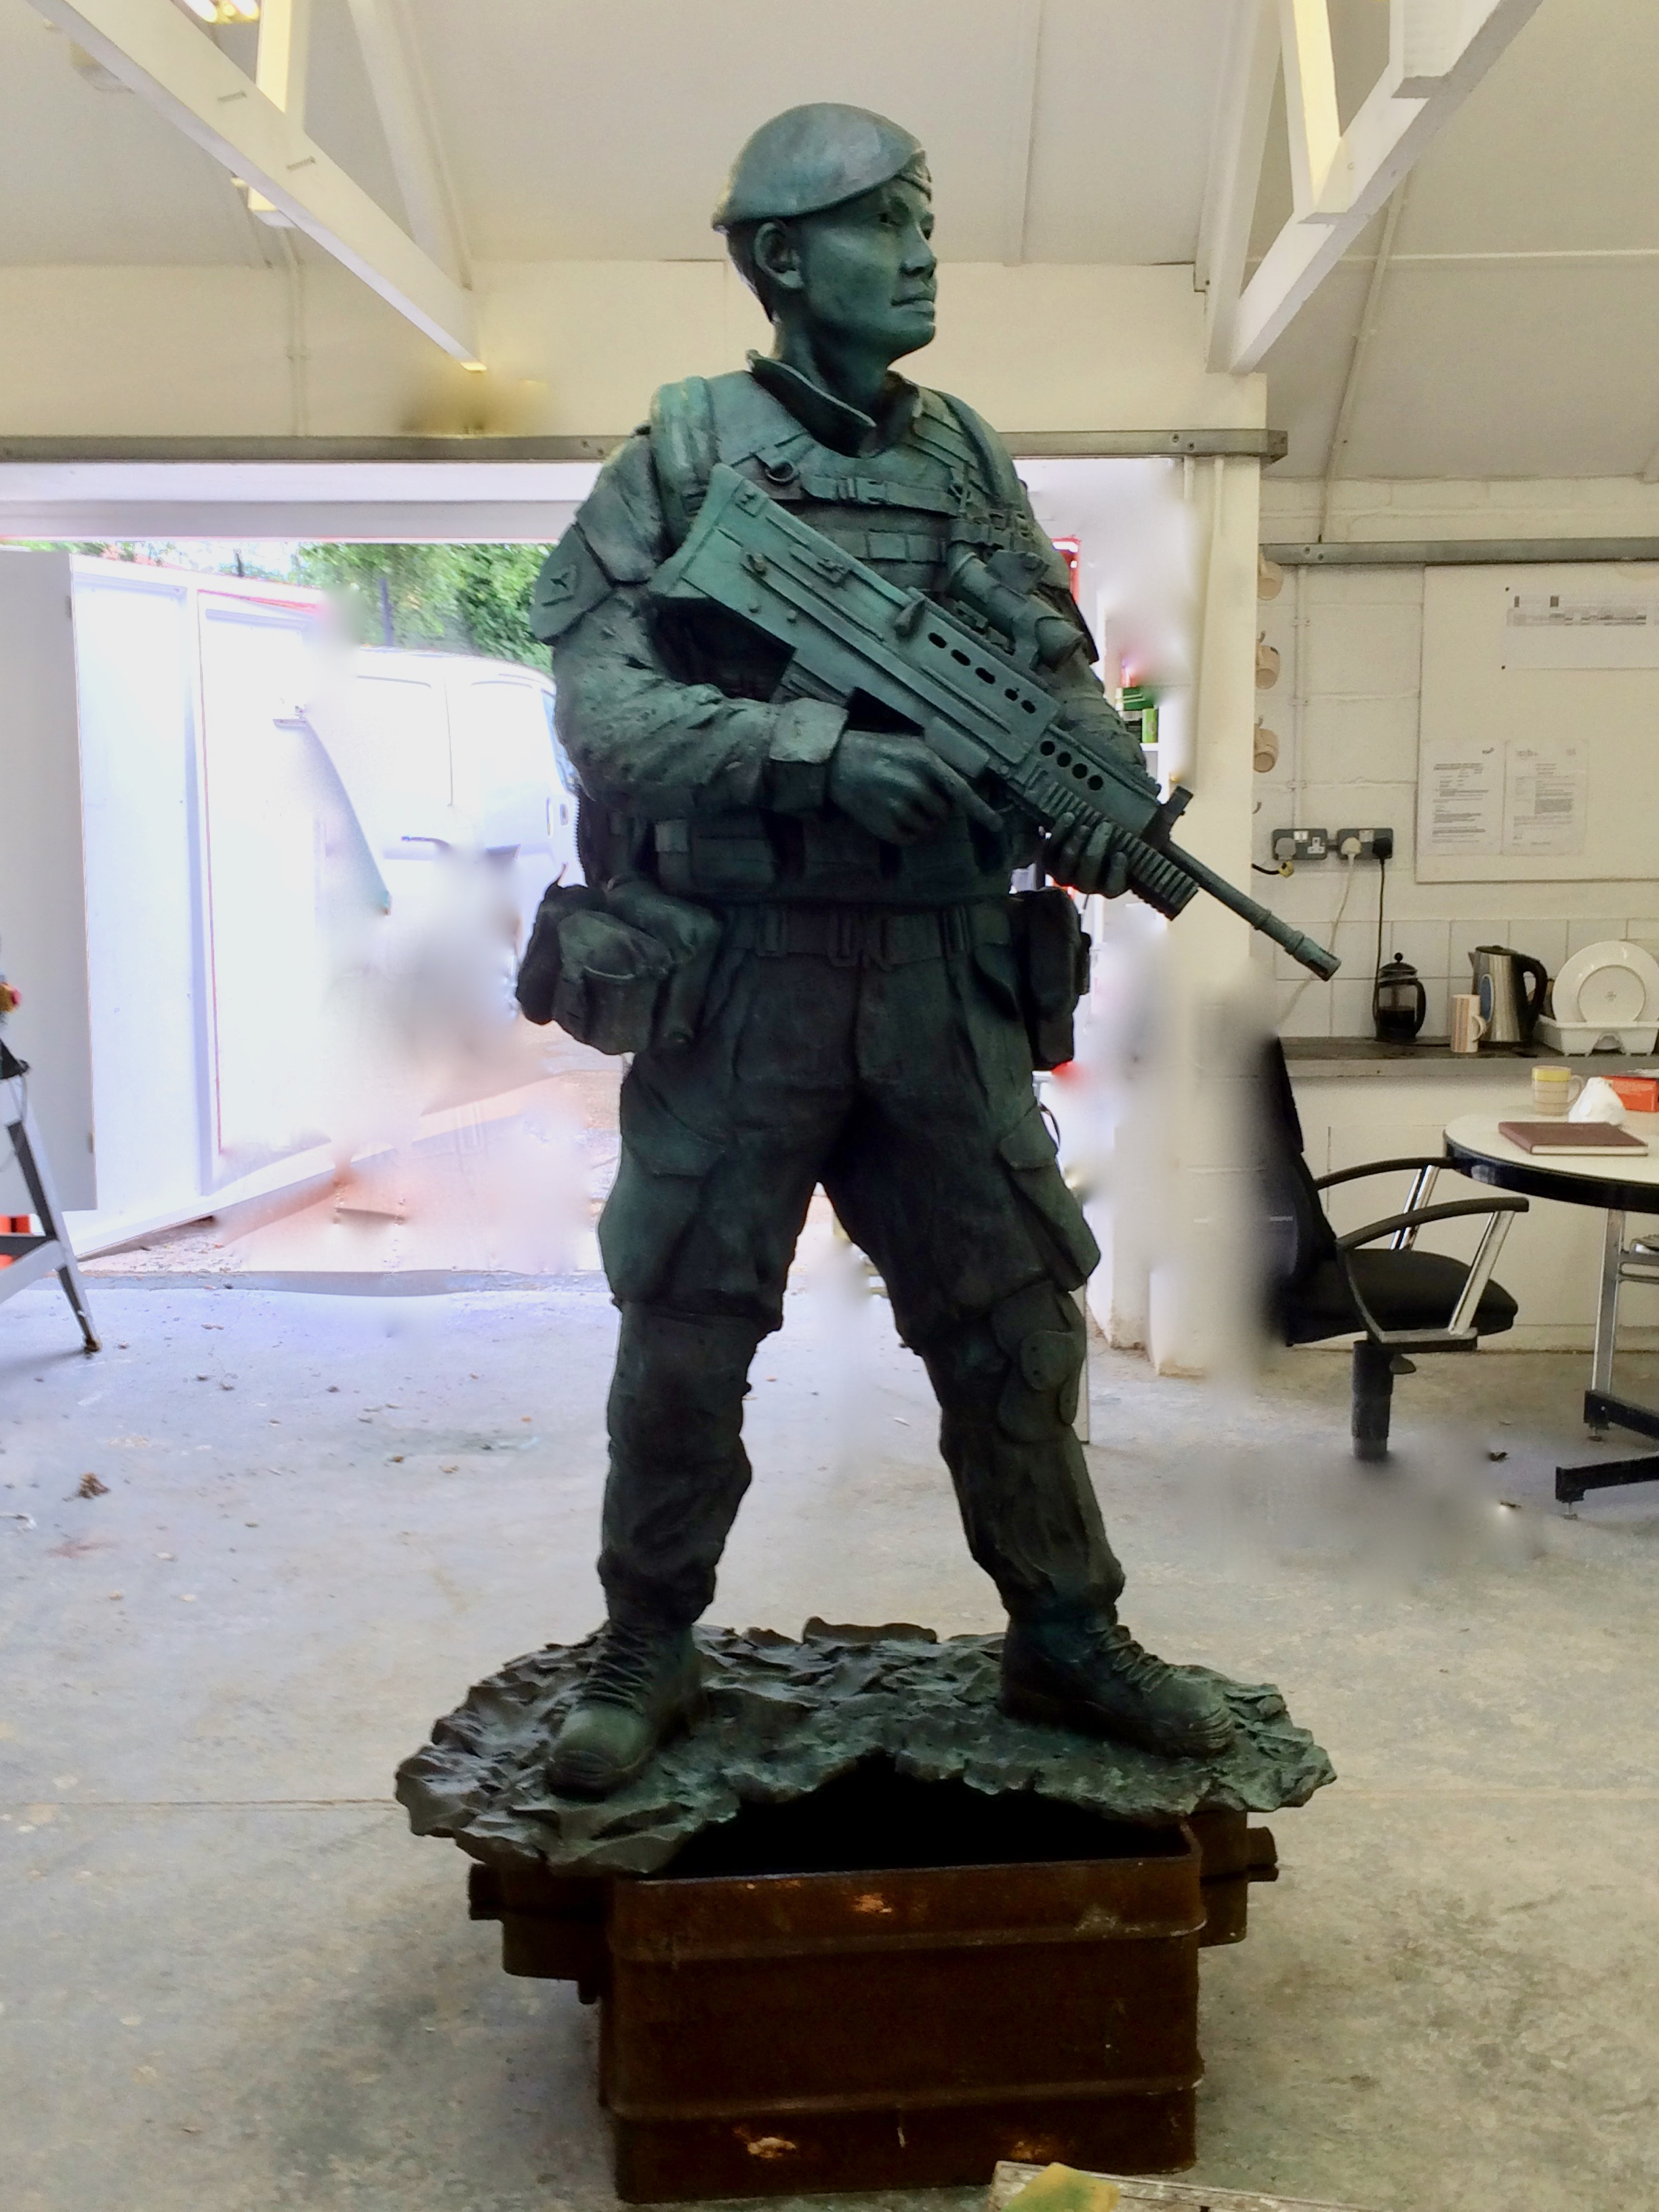 The patinated bronze